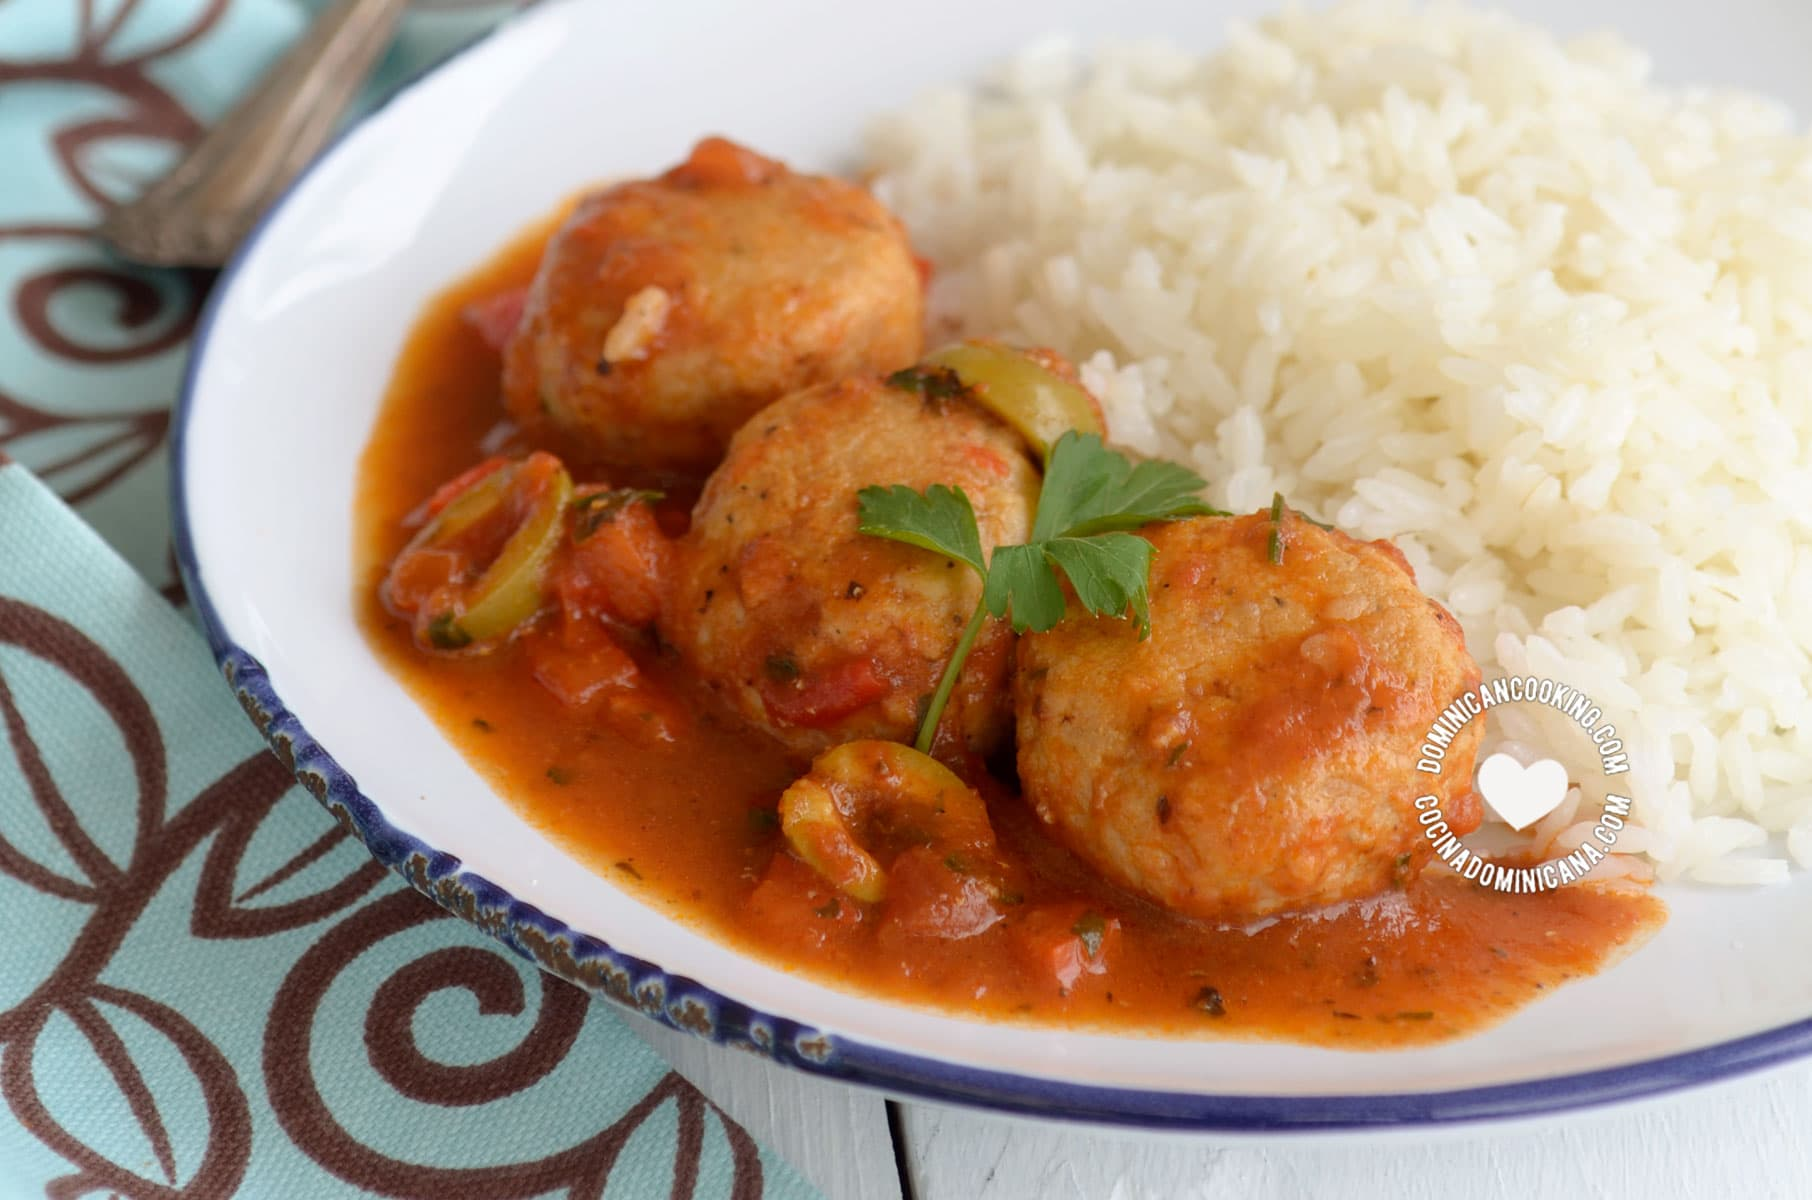 Fishballs in tomato sauce served with white rice